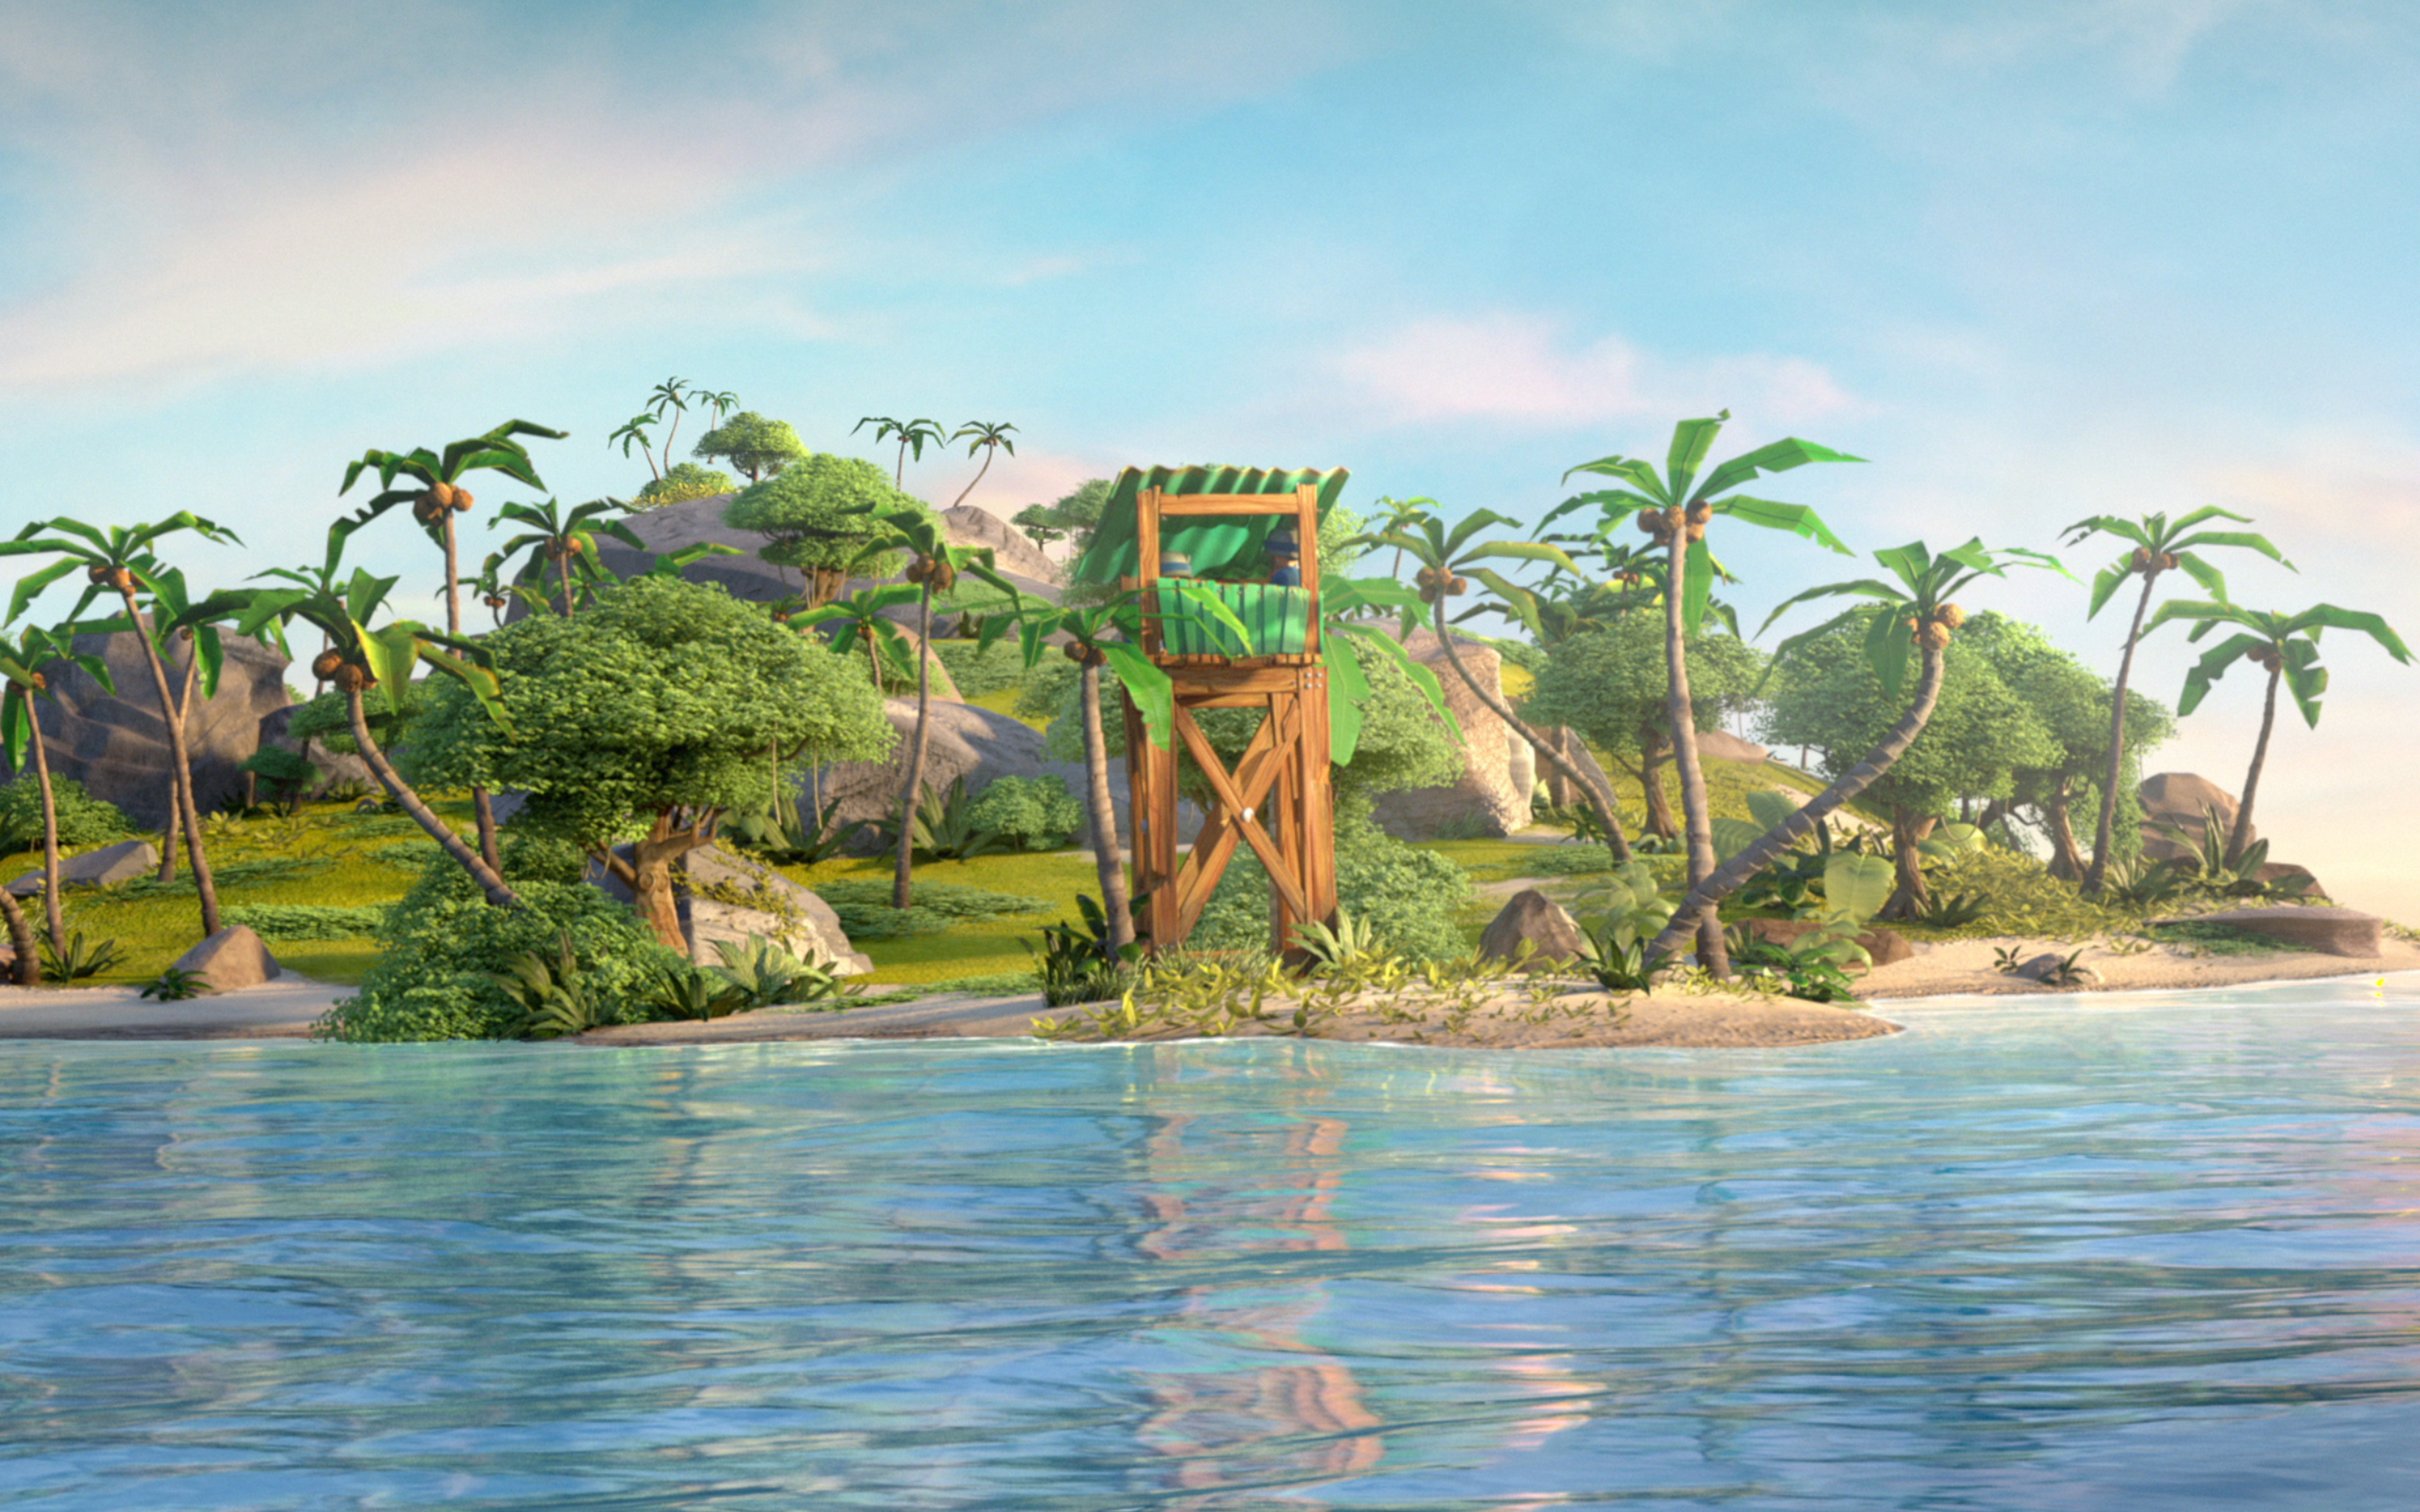 boom beach wallpaper background g source a· download tablet